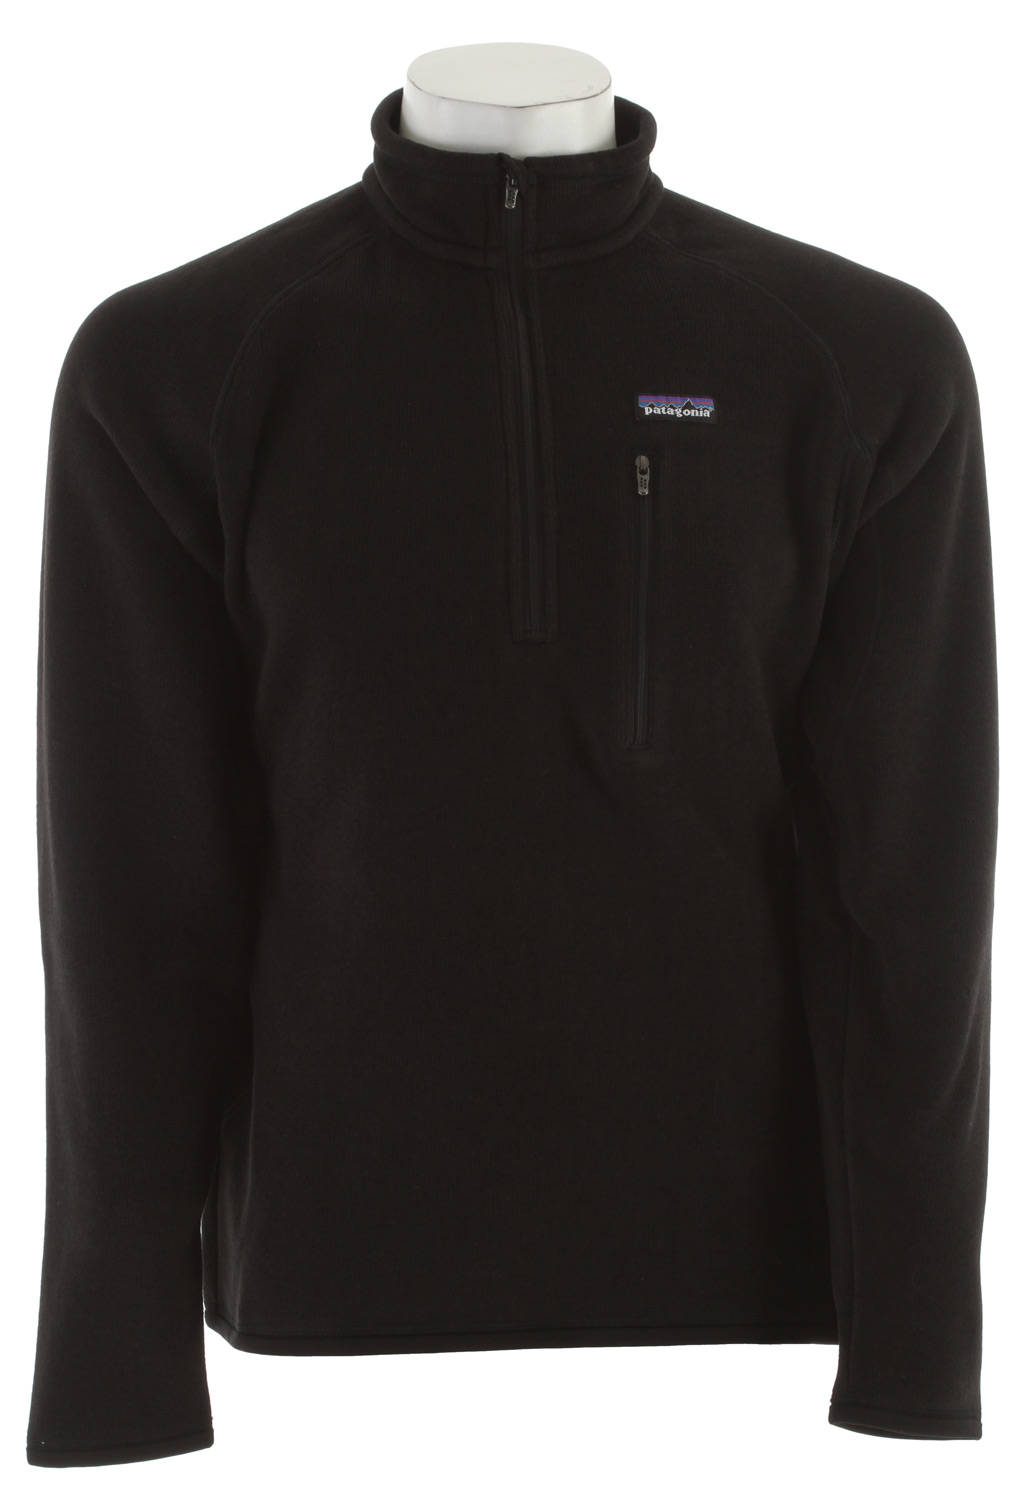 Wake A rugged, 1/4-zip fleece pullover that combines the aesthetic of wool with the easy care of polyester fleece. Wake up, check the buoys, slip on the Better Sweater 1/4-Zip and go. It's built of 9.5-oz polyester with a sweater-knit exterior and a fleece interior that creates an easy-wearing, moisture-wicking, bulk-free piece for handling the colder parts of the day. The stand-up collar has a zipper garage; raglan side and back seams make for a classic shape. Micro-polyester jersey trim at the collar, cuffs and hem wicks sweat, and a vertical zippered chest pocket secures keys and cash.Key Features of the Patagonia Better Sweater 1/4 Zip Fleece: Regular fit Fabric has a sweater-knit face, fleece interior and heathered yarns 1/4-zip pullover with stand-up collar and zipper garage Raglan sleeves for pack-wearing comfort Zippered chest pocket Micropolyester jersey trim on cuffs, hem and back of neck Can be worn with layers as outerwear in cold conditions, or as a midlayer under a shell jacket Hip length 9.5-oz 100% polyester with a sweater-knit exterior and a fleece interior 490 g (17.3 oz) Made in Thailand. - $66.95